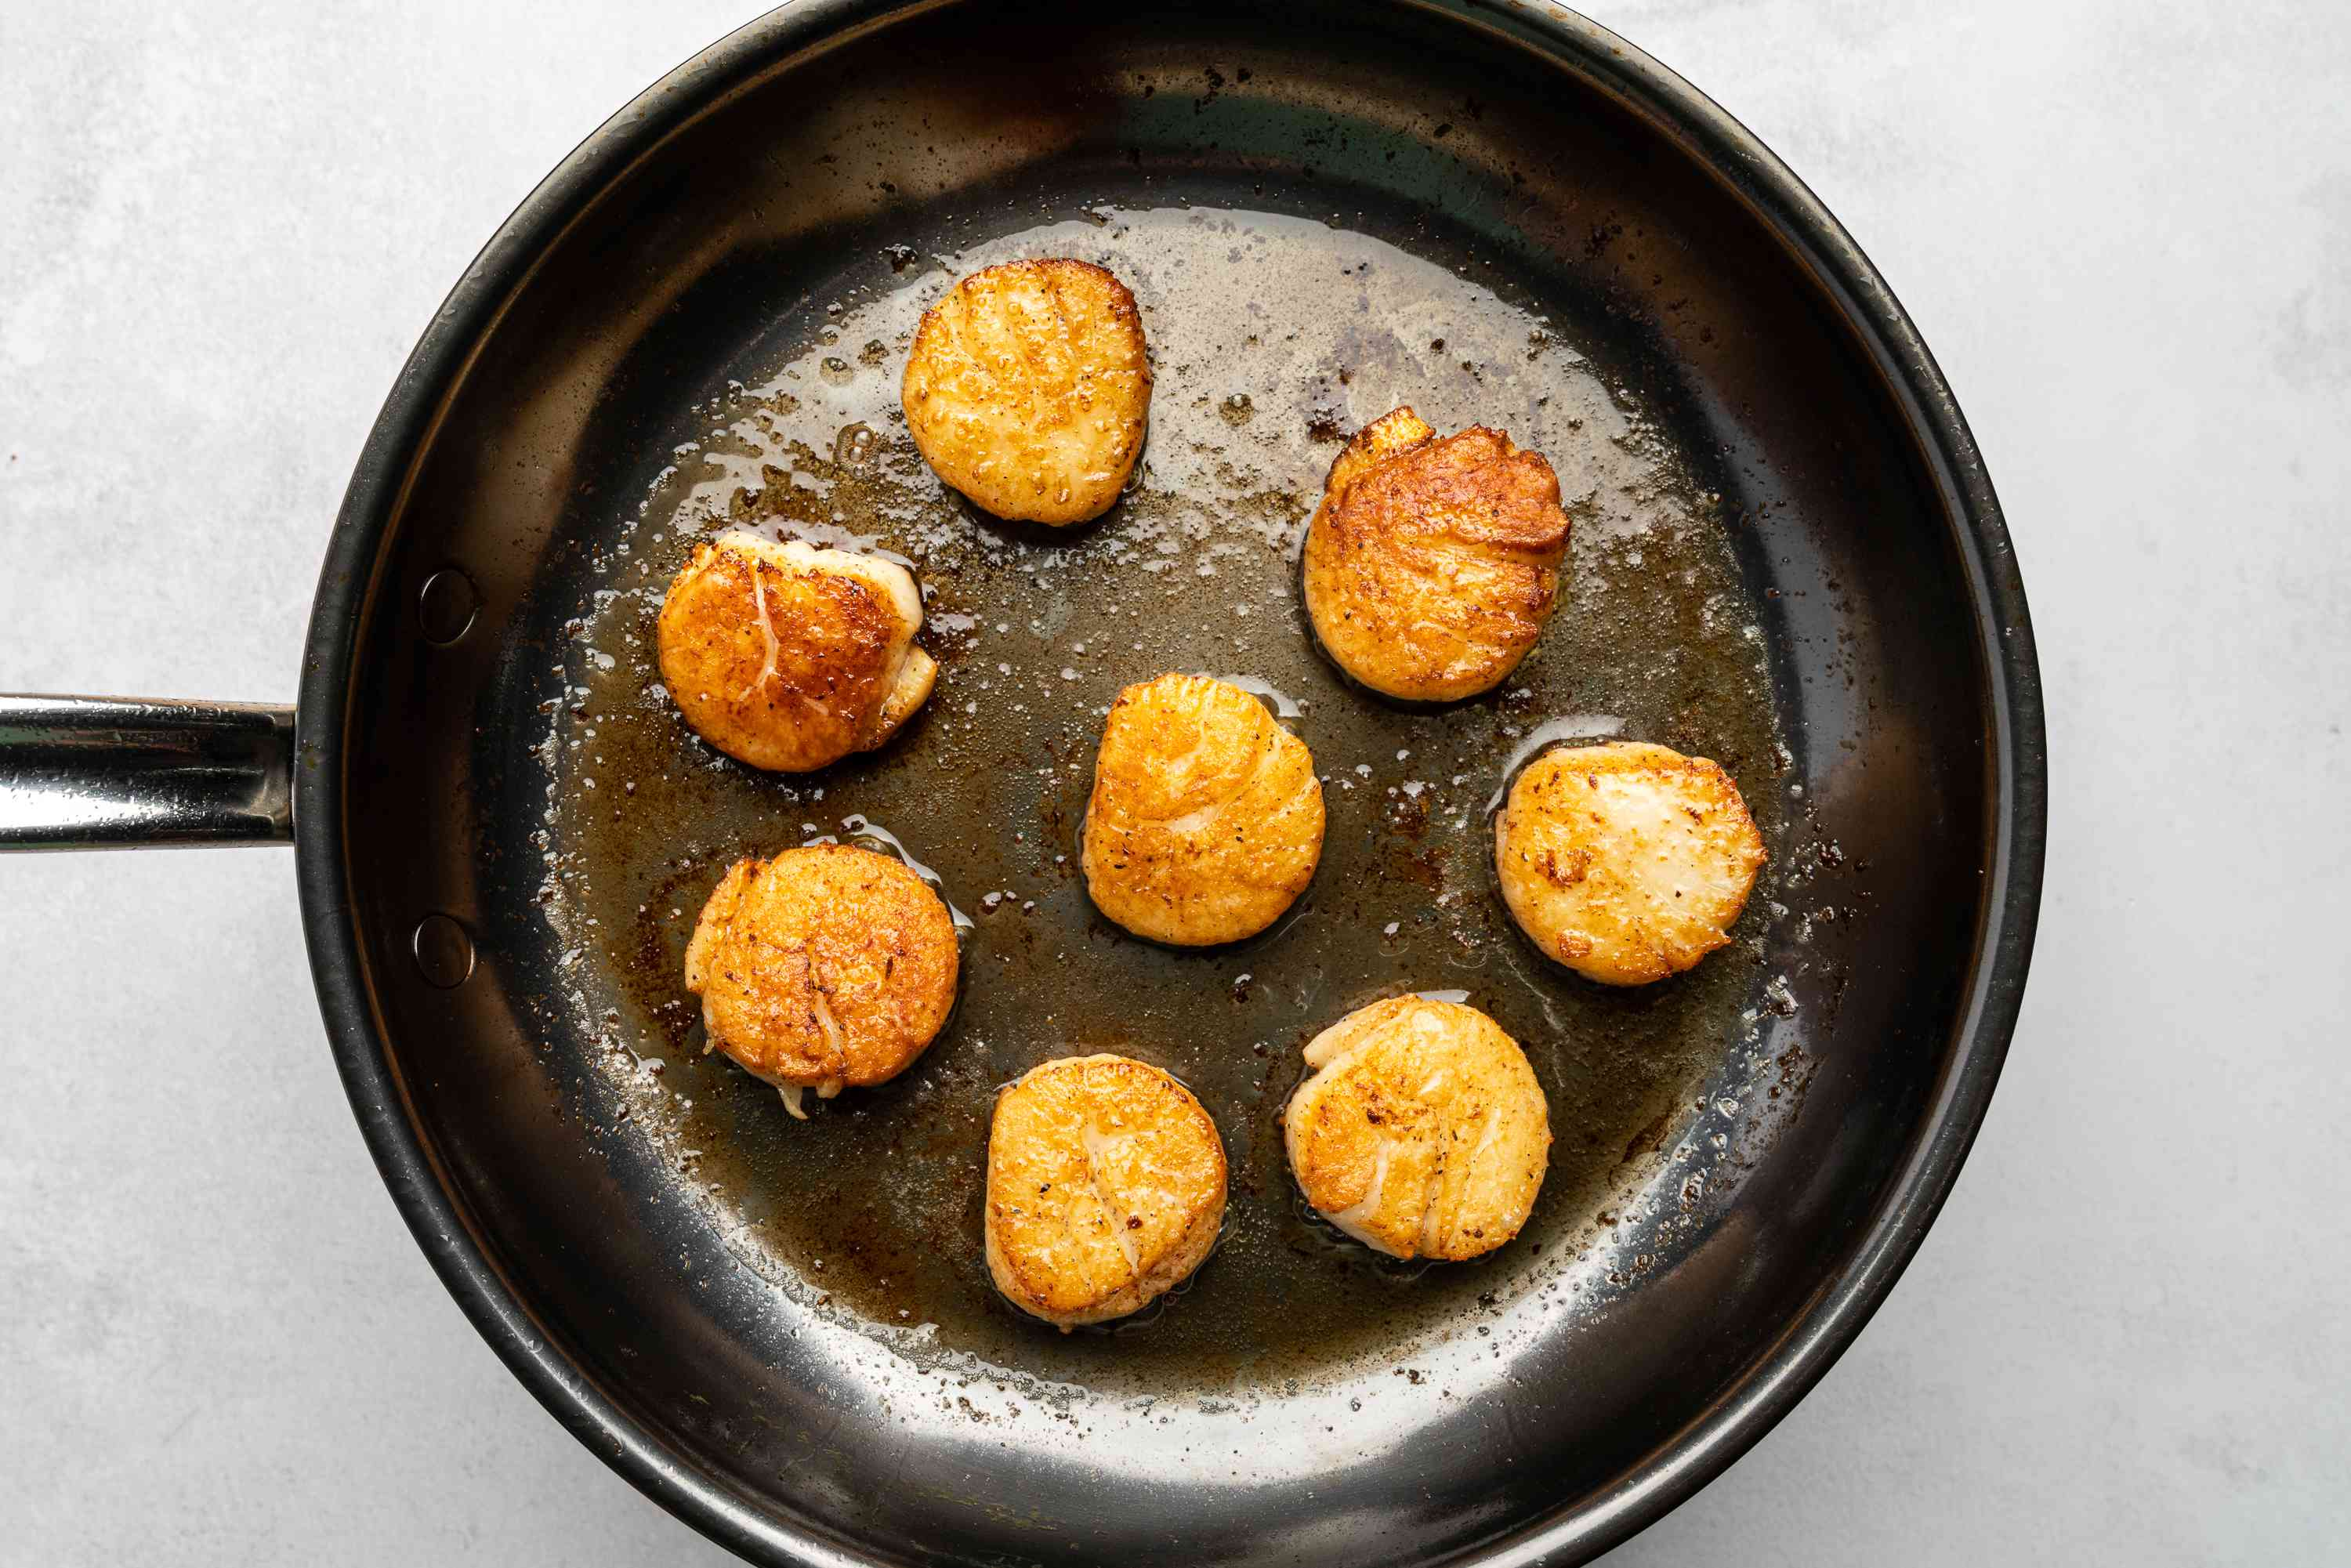 scallops cooking in a pan